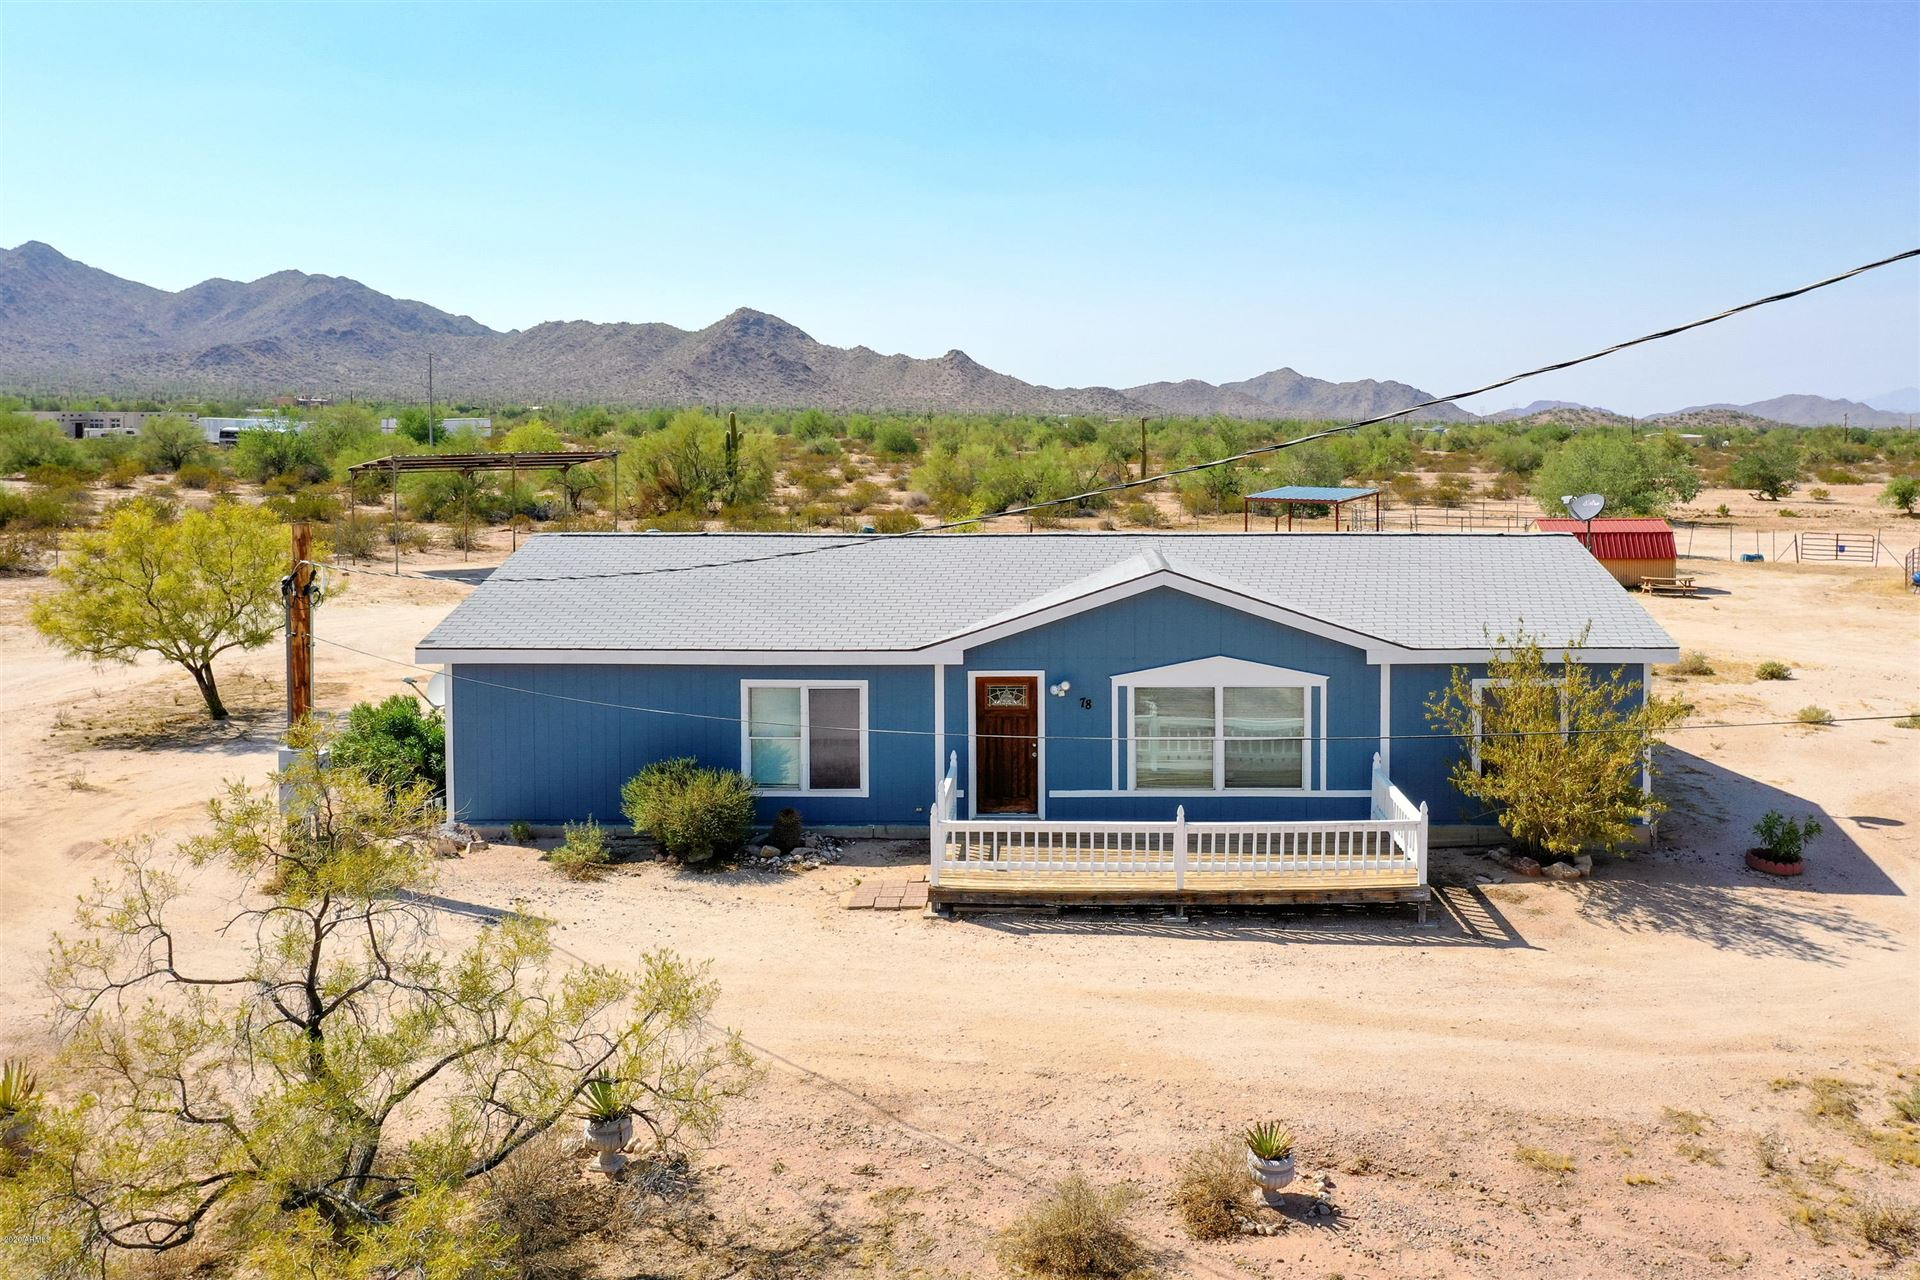 Photo for 78 S ARIDO Road, Maricopa, AZ 85139 (MLS # 6125997)